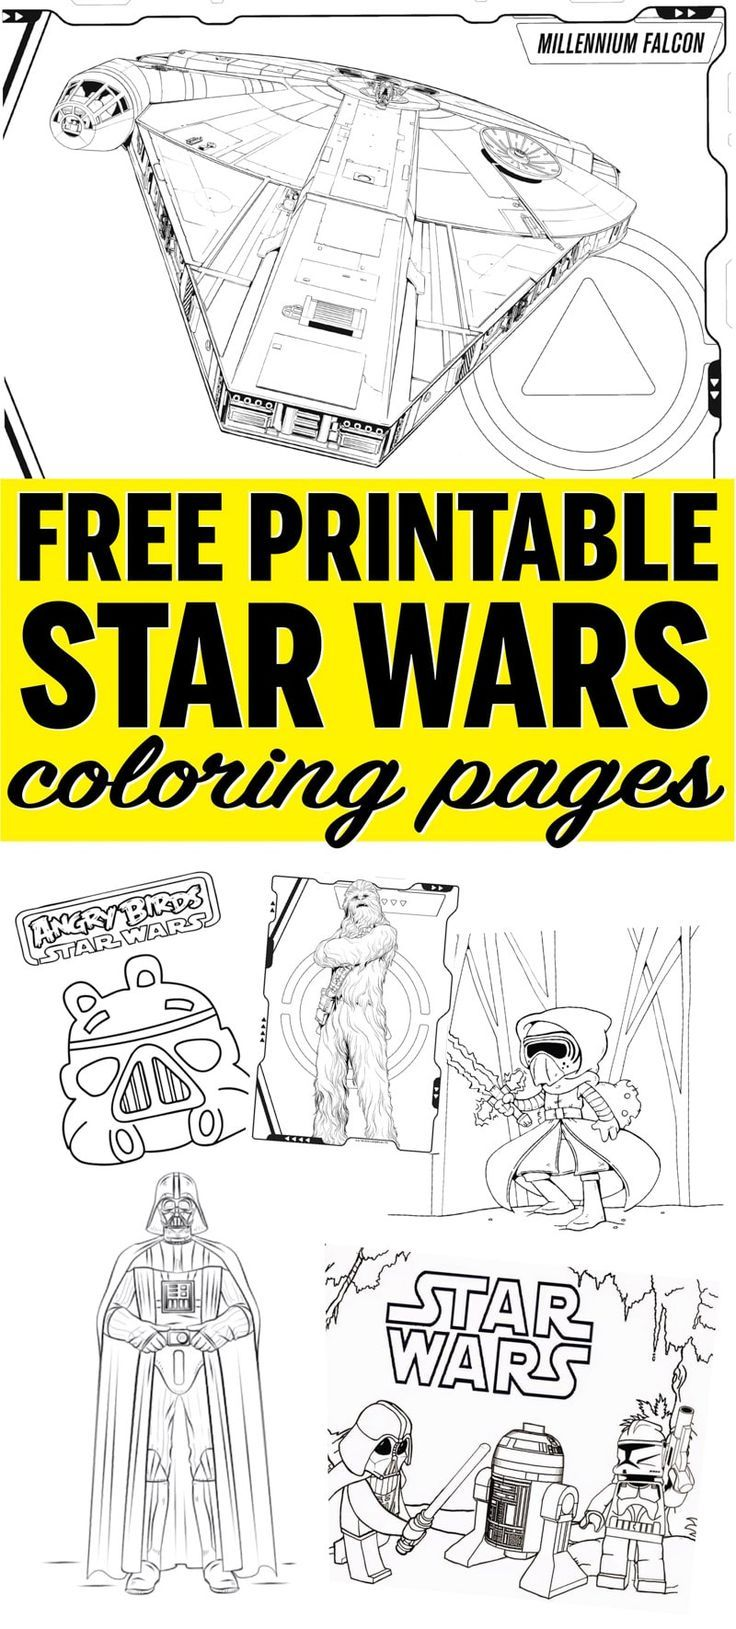 Star Wars Free Printable Coloring Pages For Adults Kids Over 100 Designs Everythingetsy Com Star Wars Coloring Book Star Wars Colors Star Wars Coloring Sheet